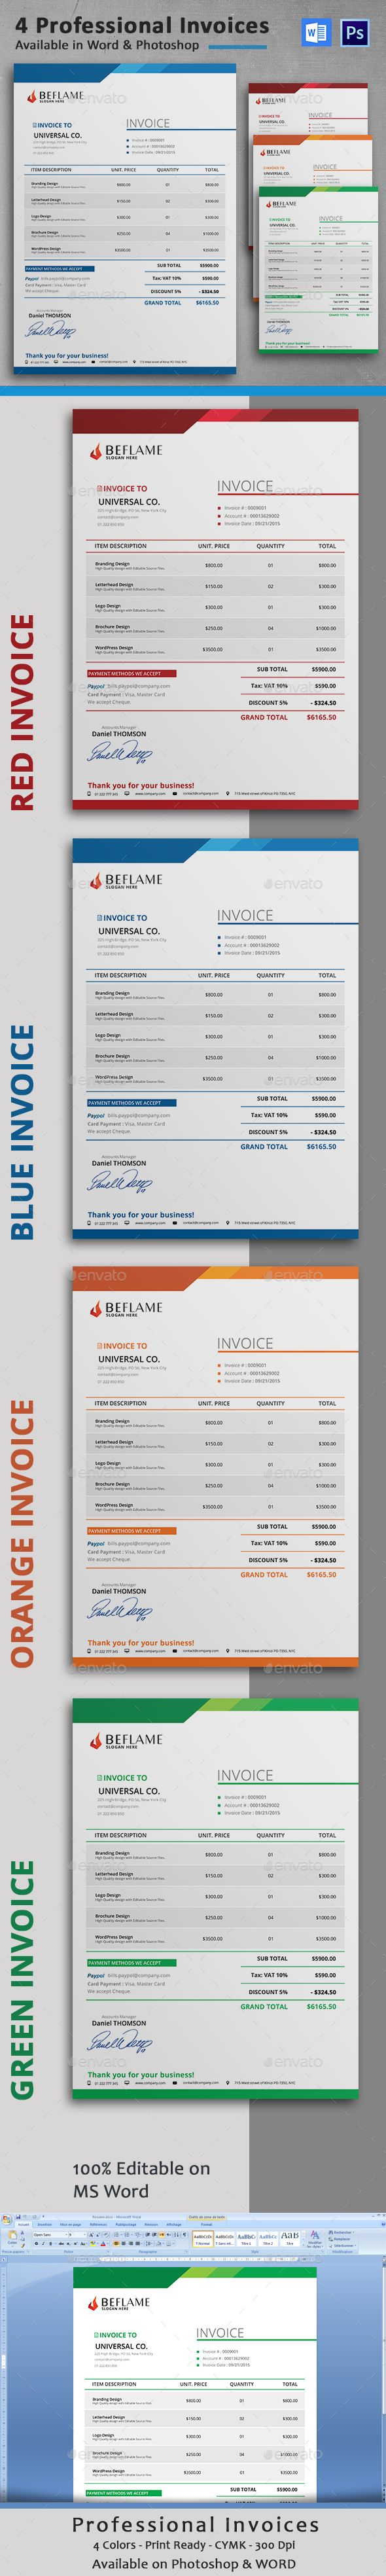 Email Invoices Cool Invoice  Proposals Template And Business Design